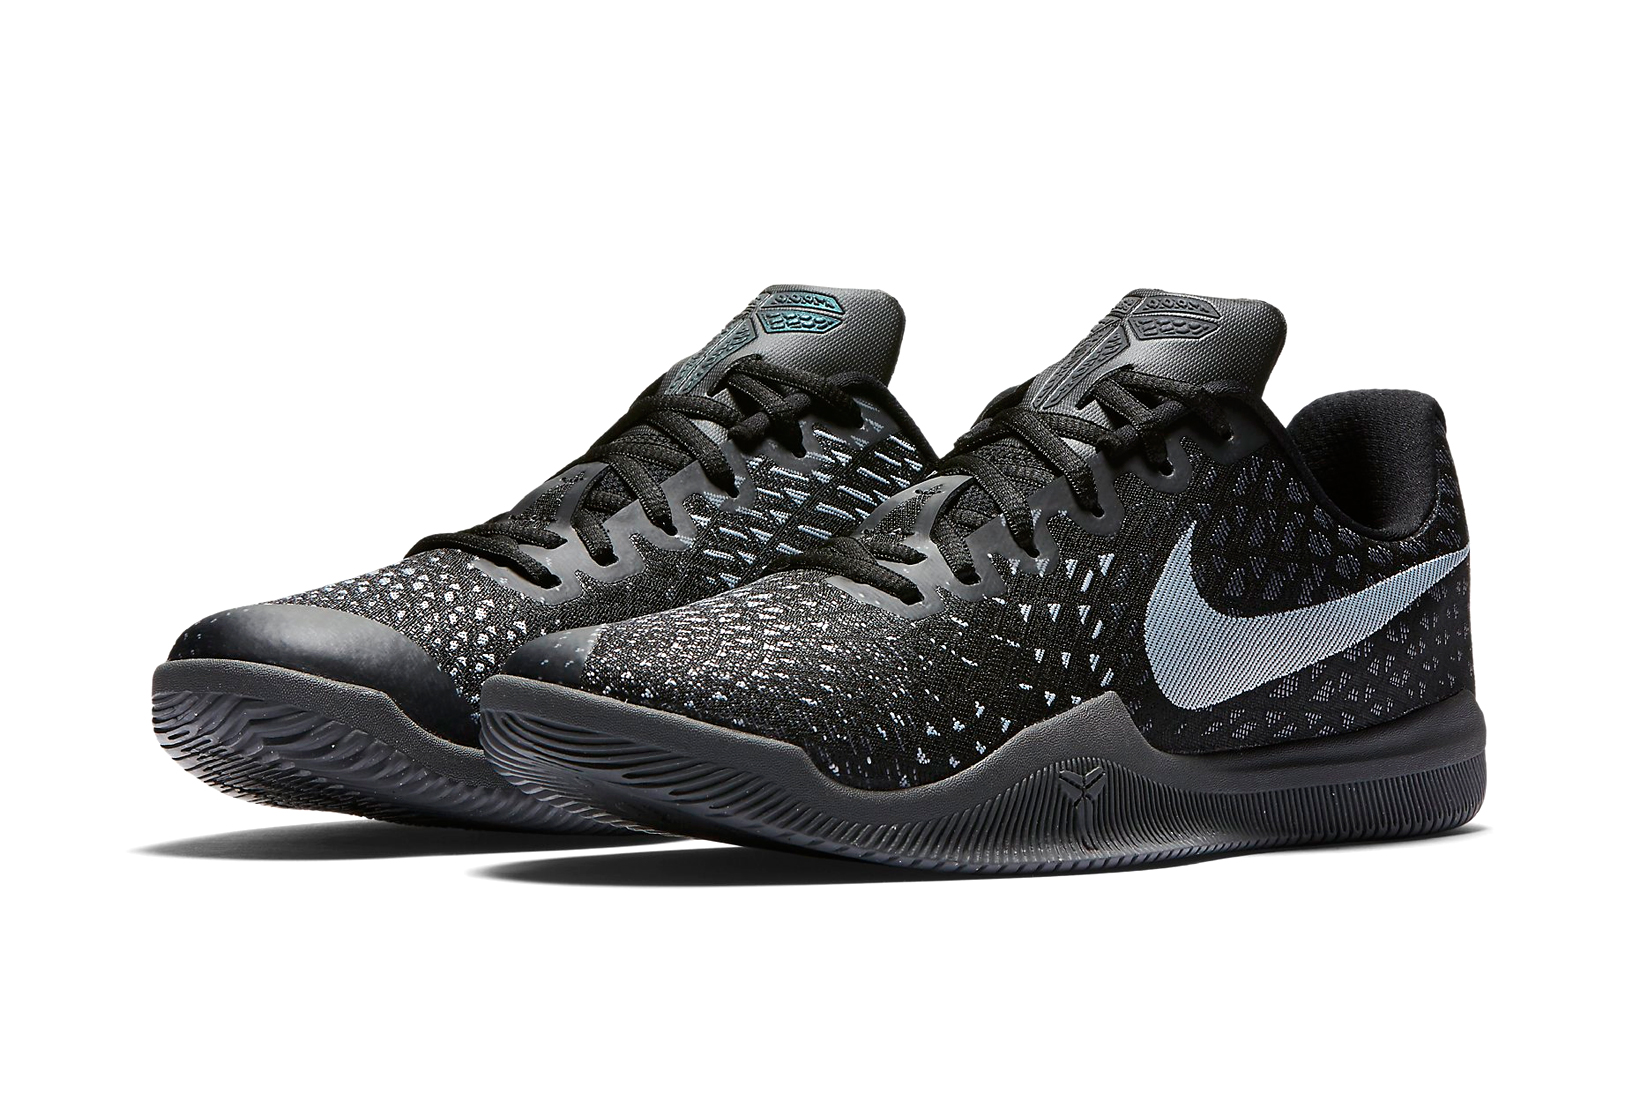 93def1370598 kobe mamba instinct uk black and purple shoes